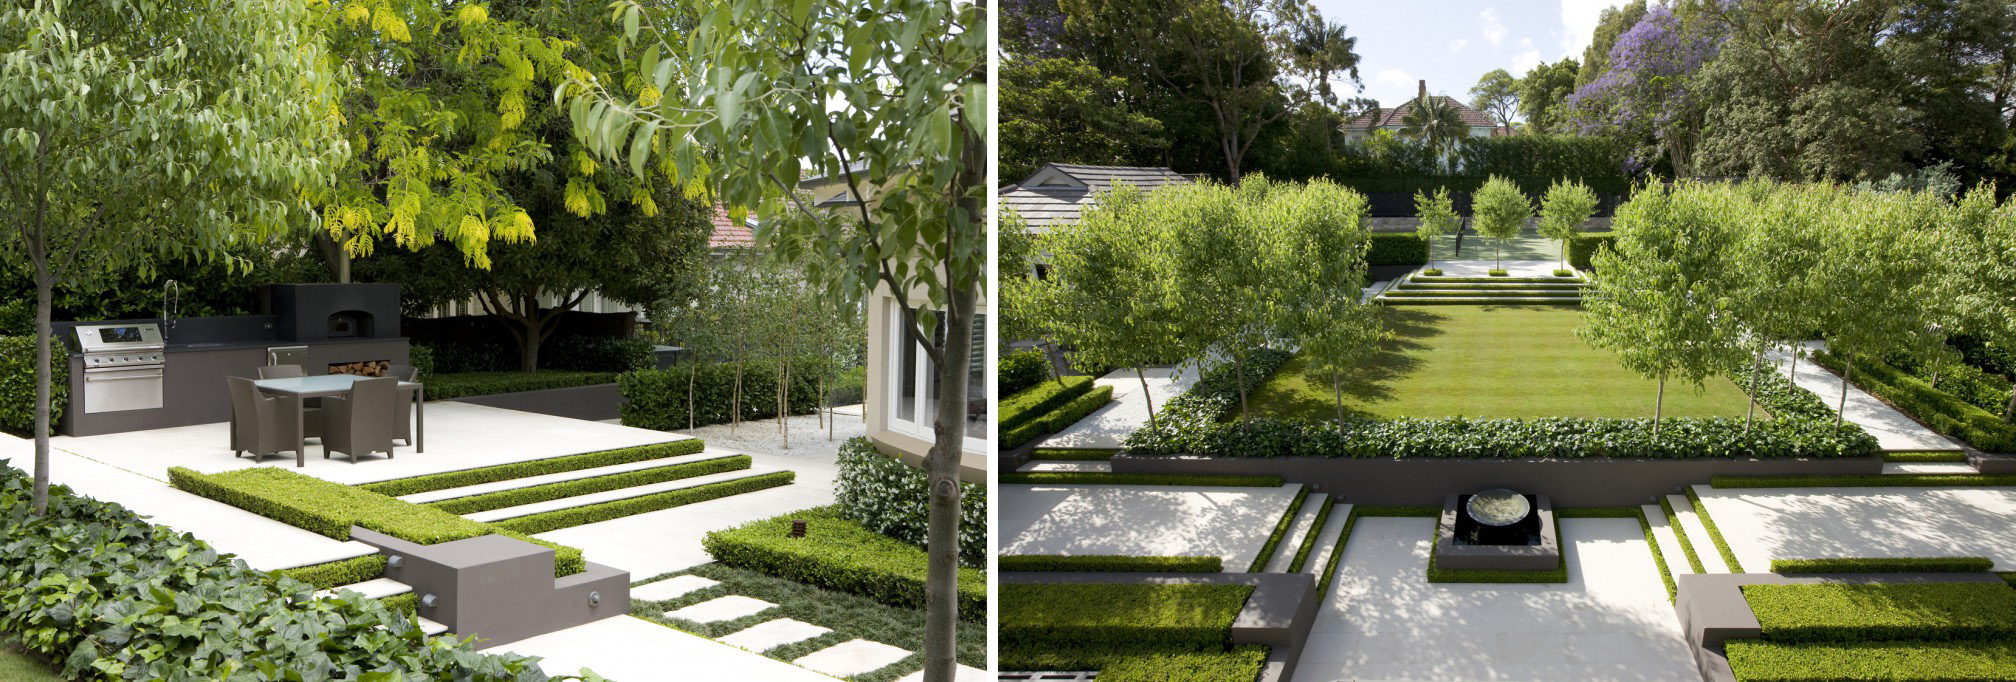 contemporary landscapes, modern gardens: inspiration for spring